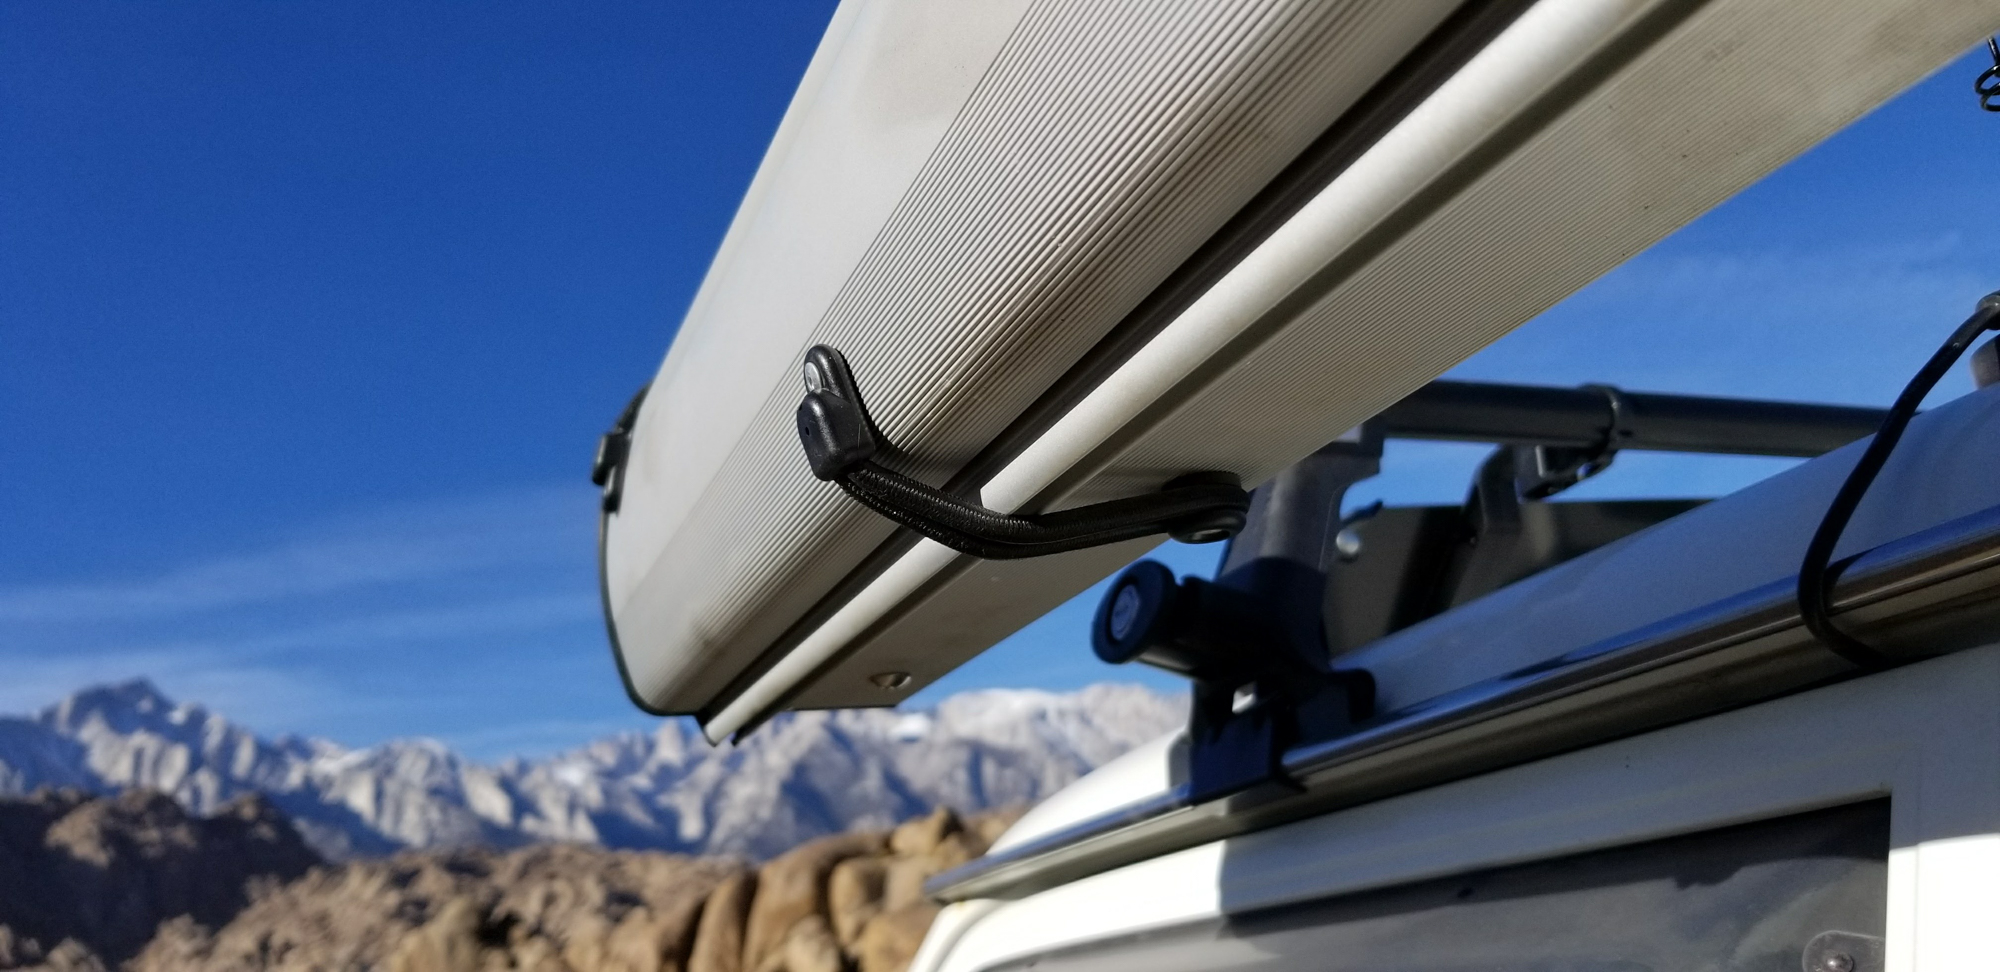 Field Tested Arb Aluminum Awning 2500mm Expedition Portal